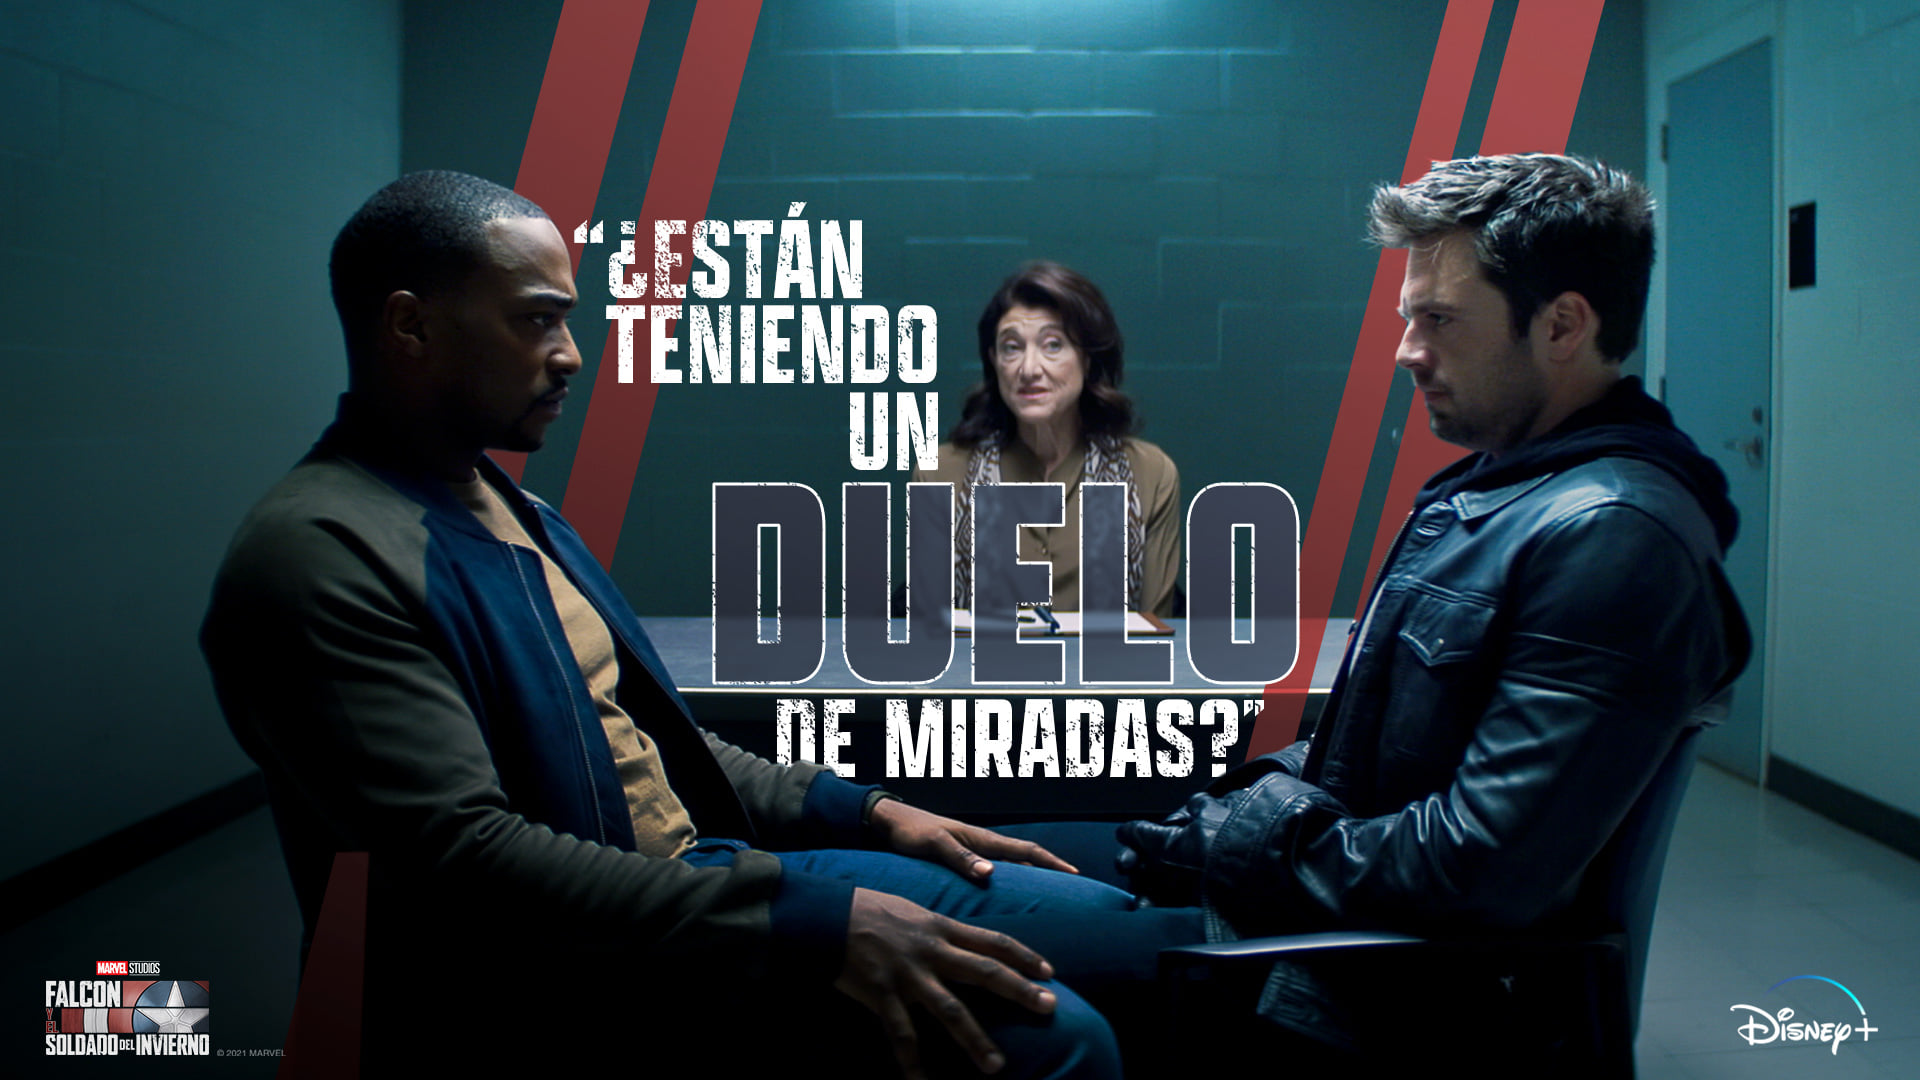 Falcon y El Soldado del Invierno podcast disney plus peru winter soldier langoy